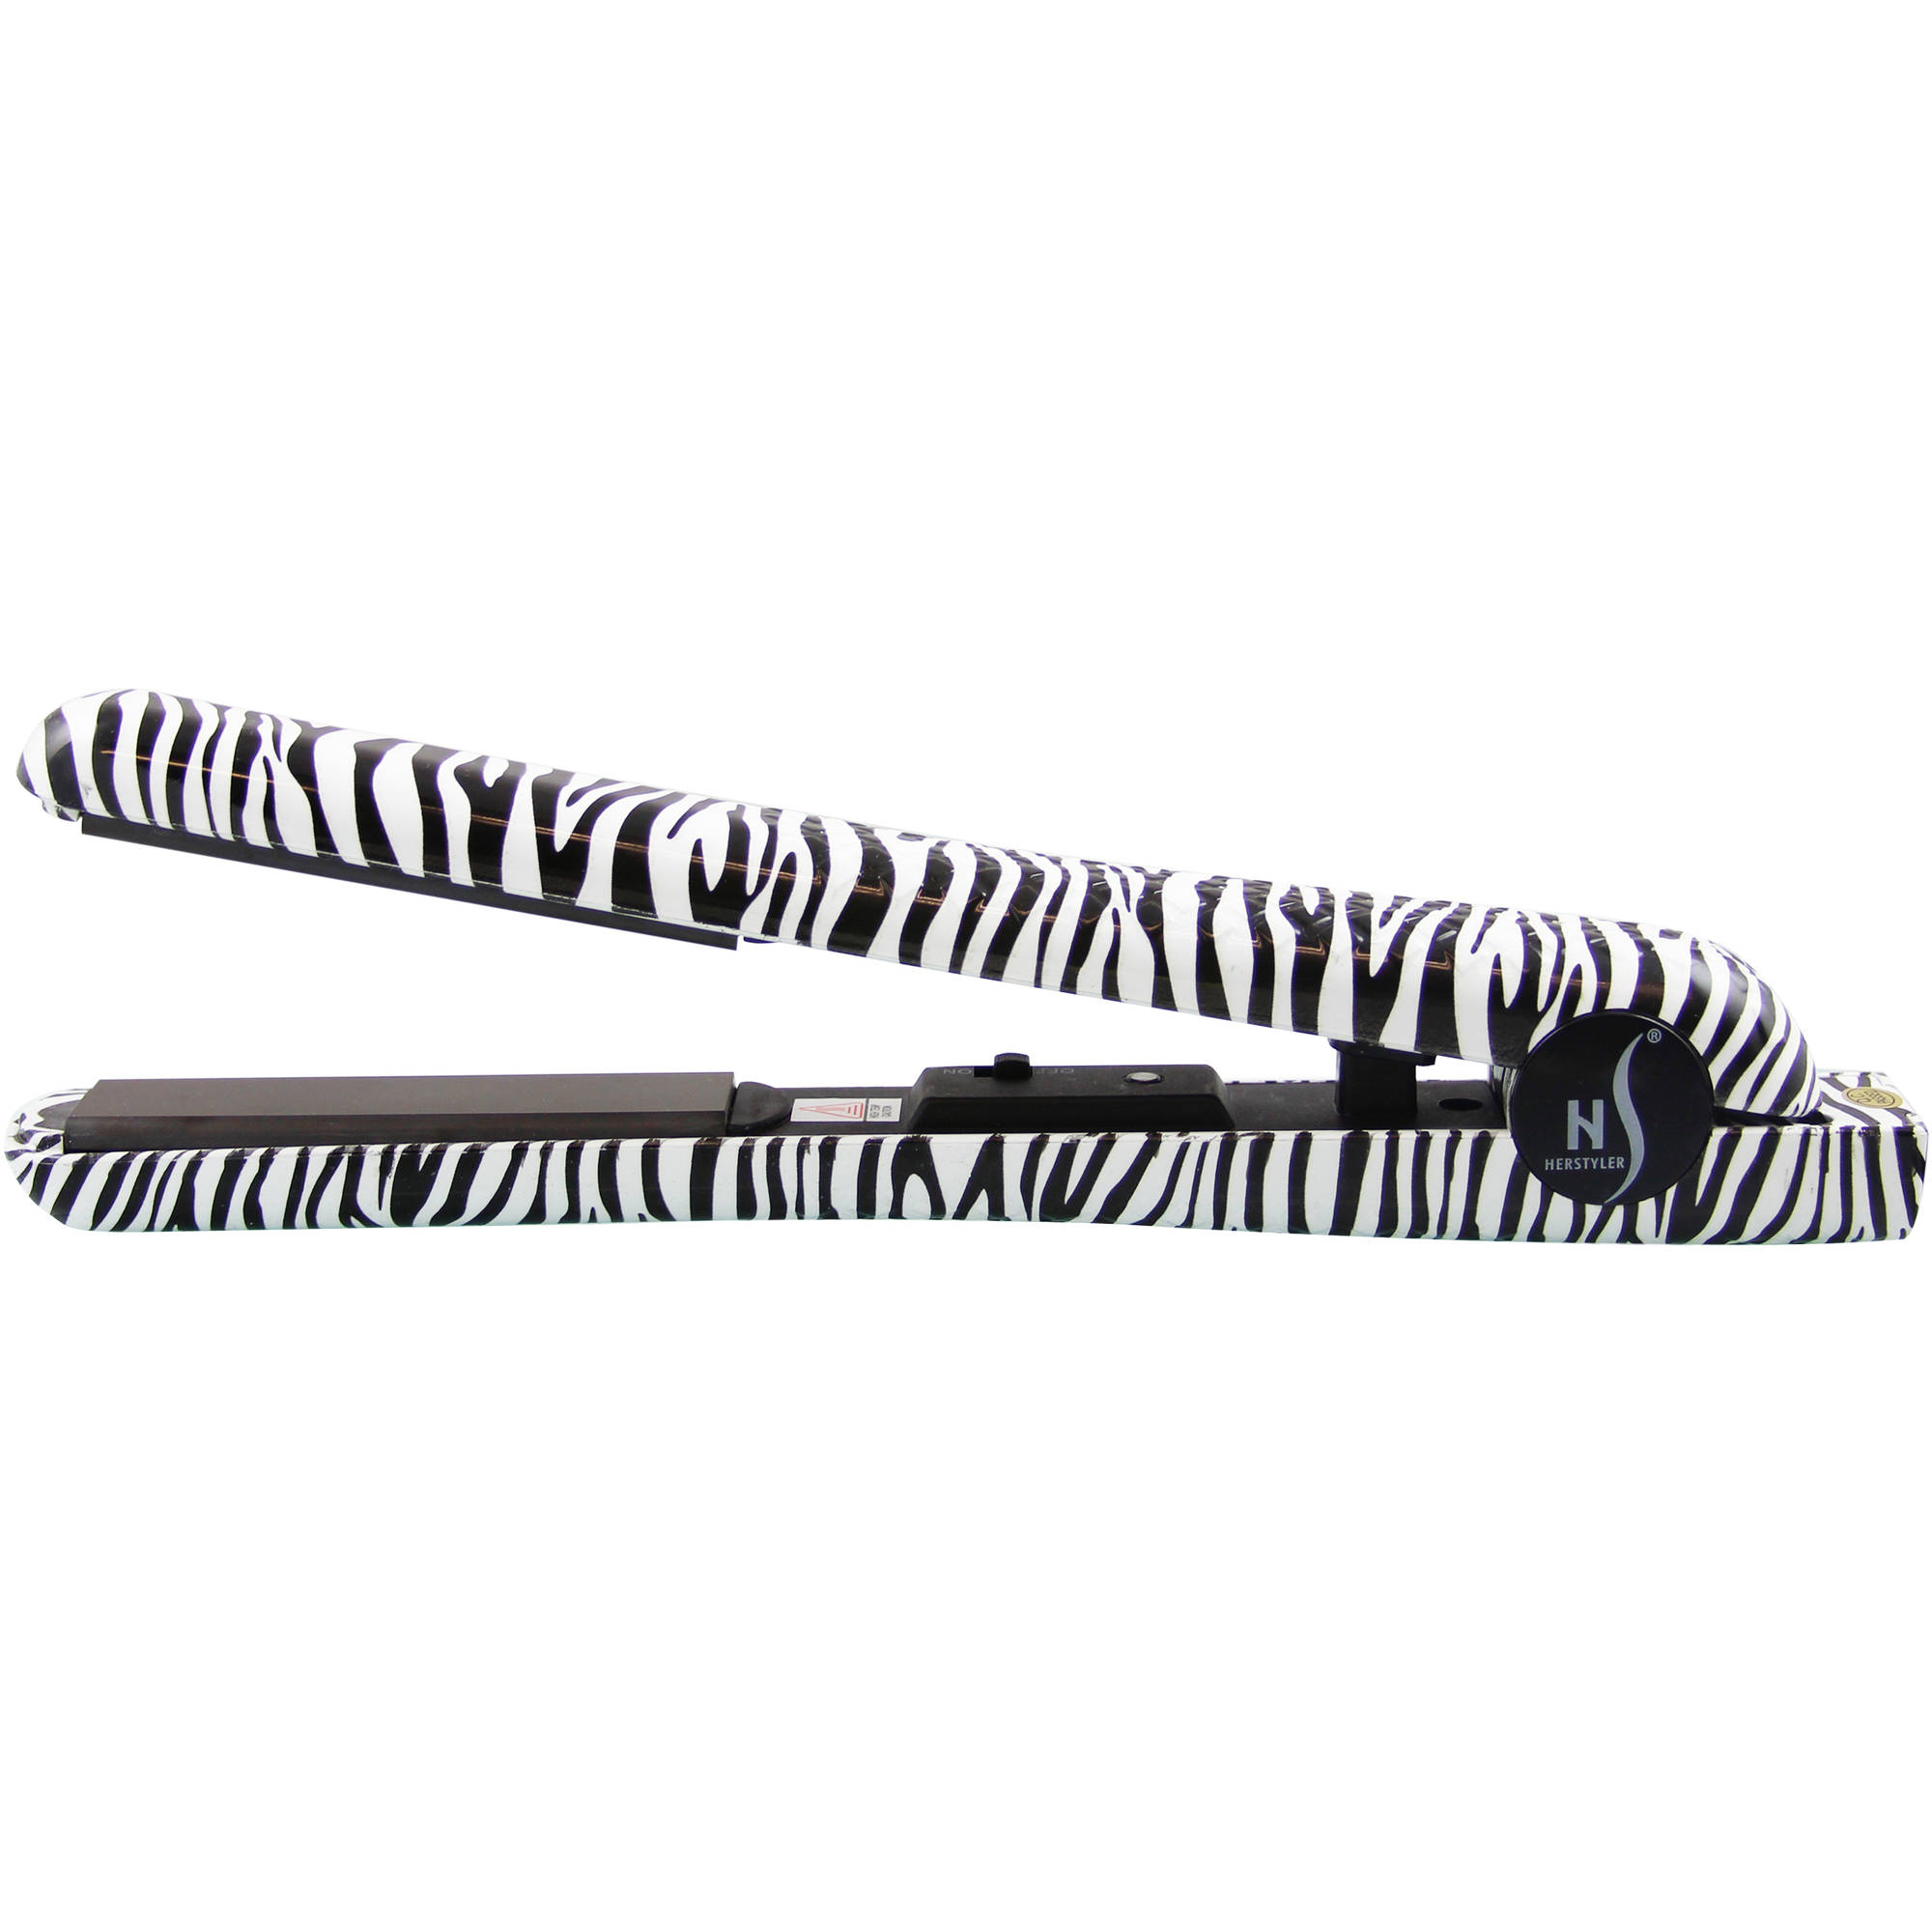 HerStyler Hair Straightener, White Zebra